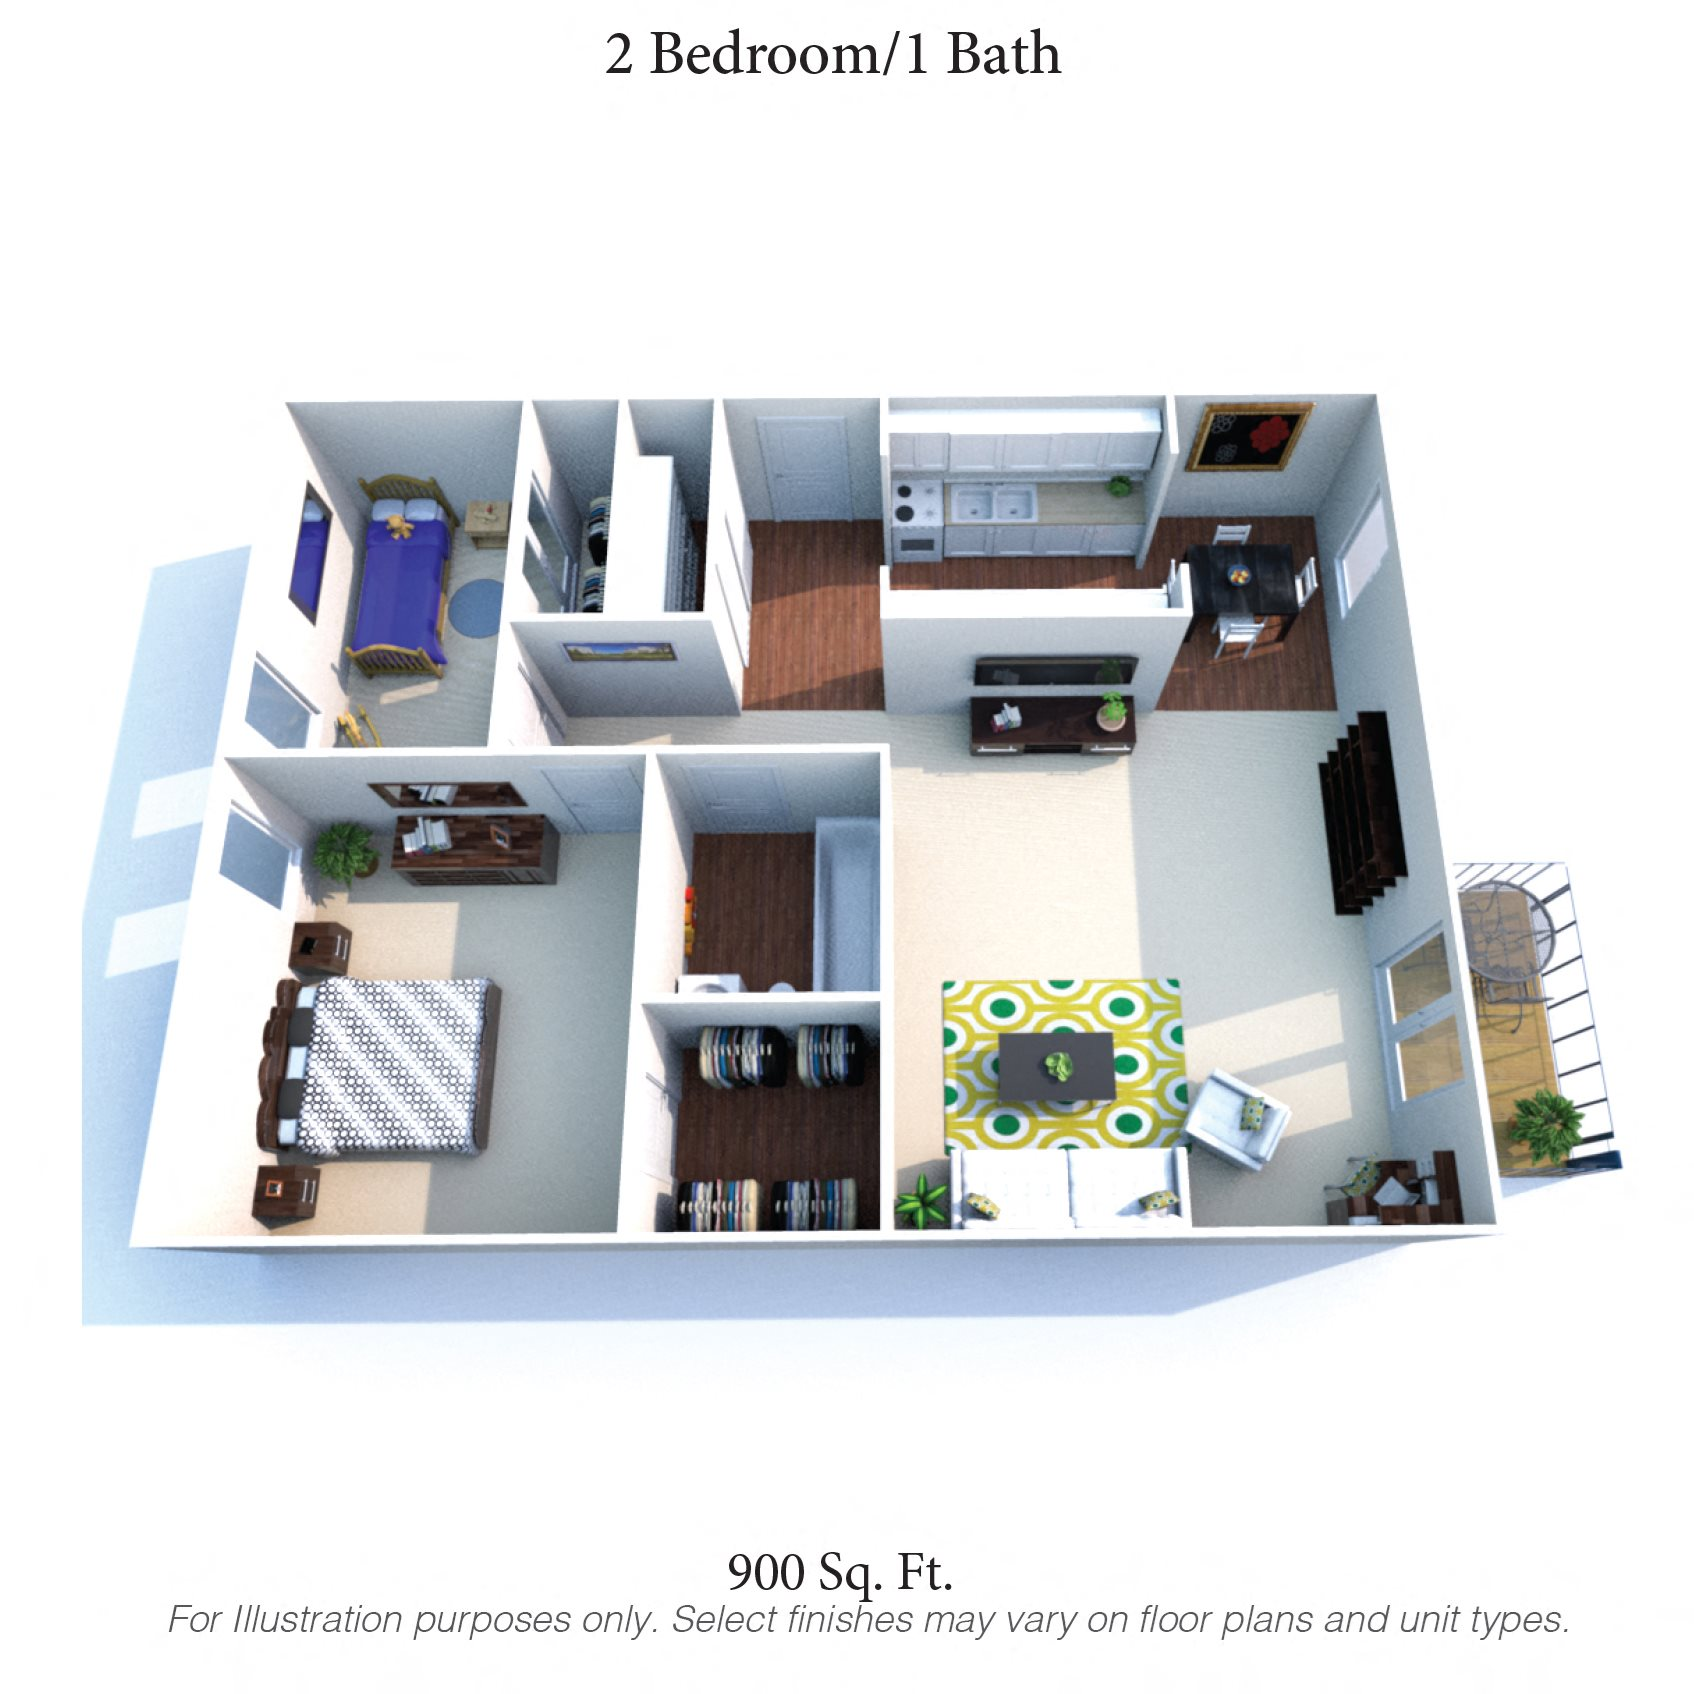 2 bedroom - 1 bath Floor Plan 2